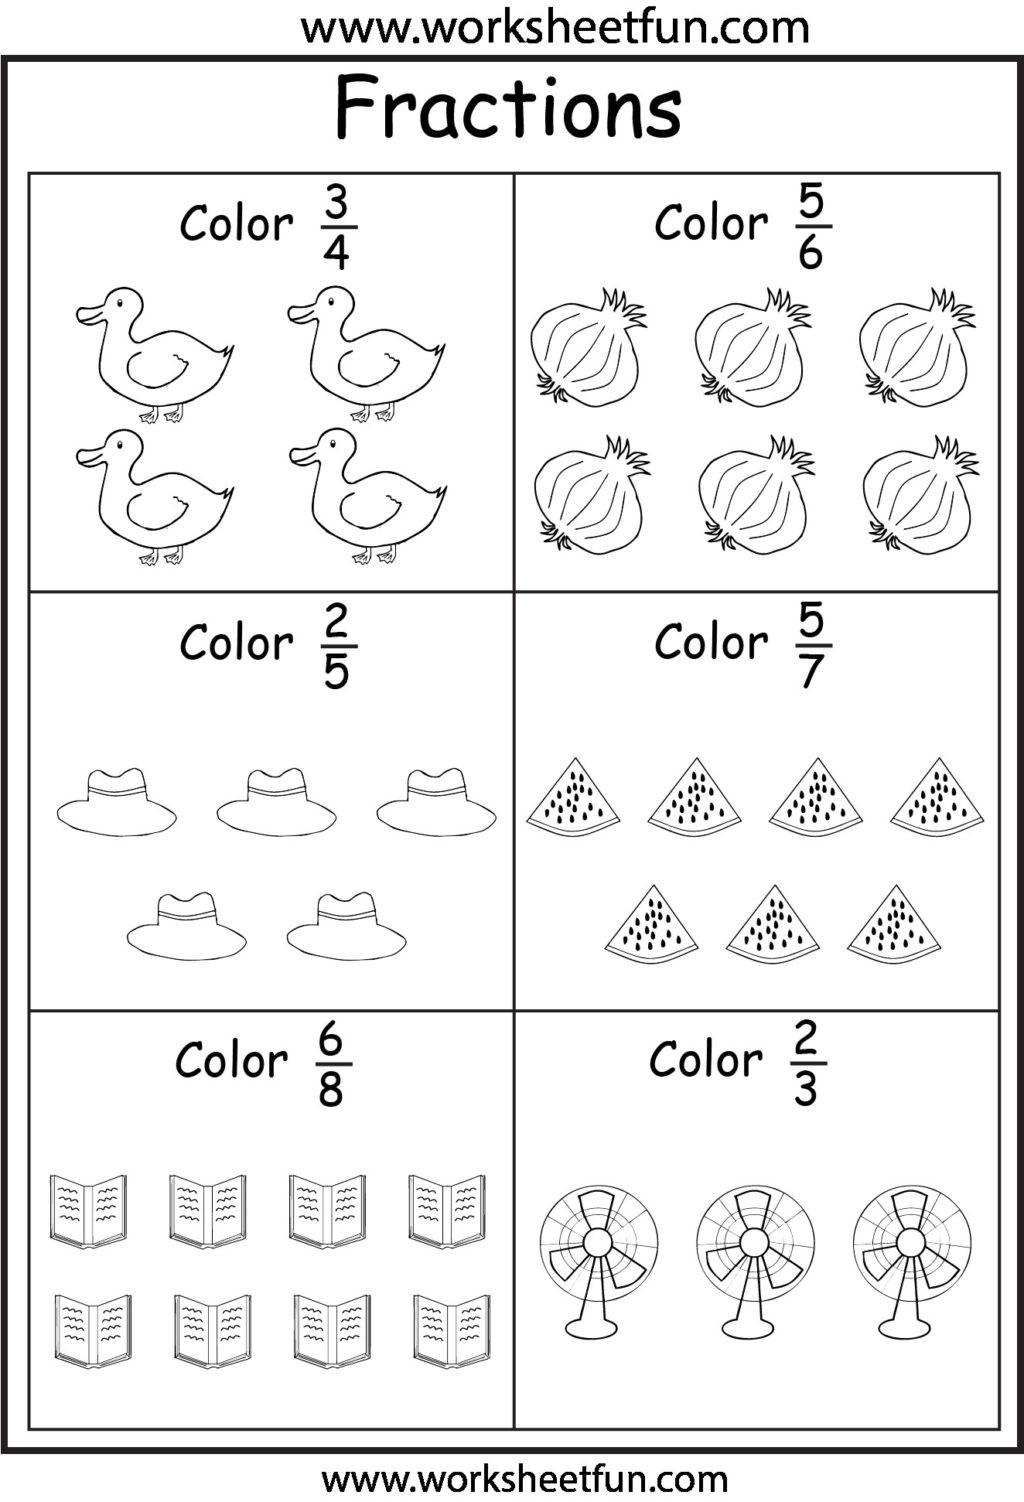 Second Grade Fraction Worksheets Worksheet Second Gradetions Worksheets Worksheet Free Math